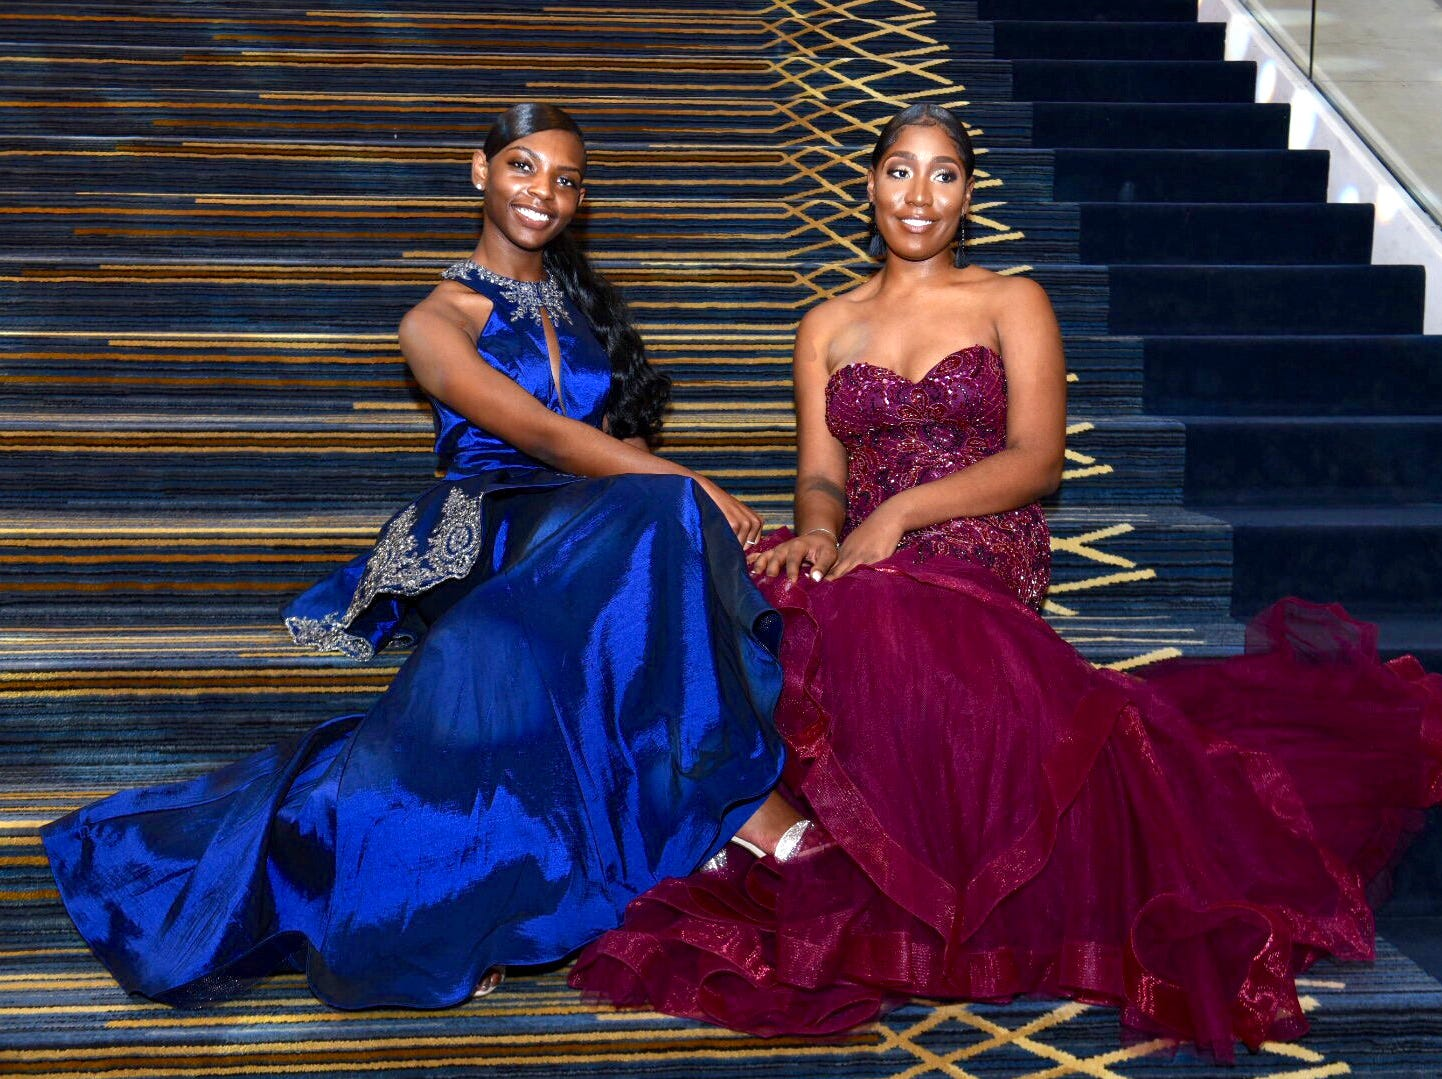 Kamari Ray, left, and Audrey Johnson, both of Detroit, pose in the Atrium at Cobo Center after arriving at the 2019 Auto Show Charity Preview gala Friday, Jan. 18.